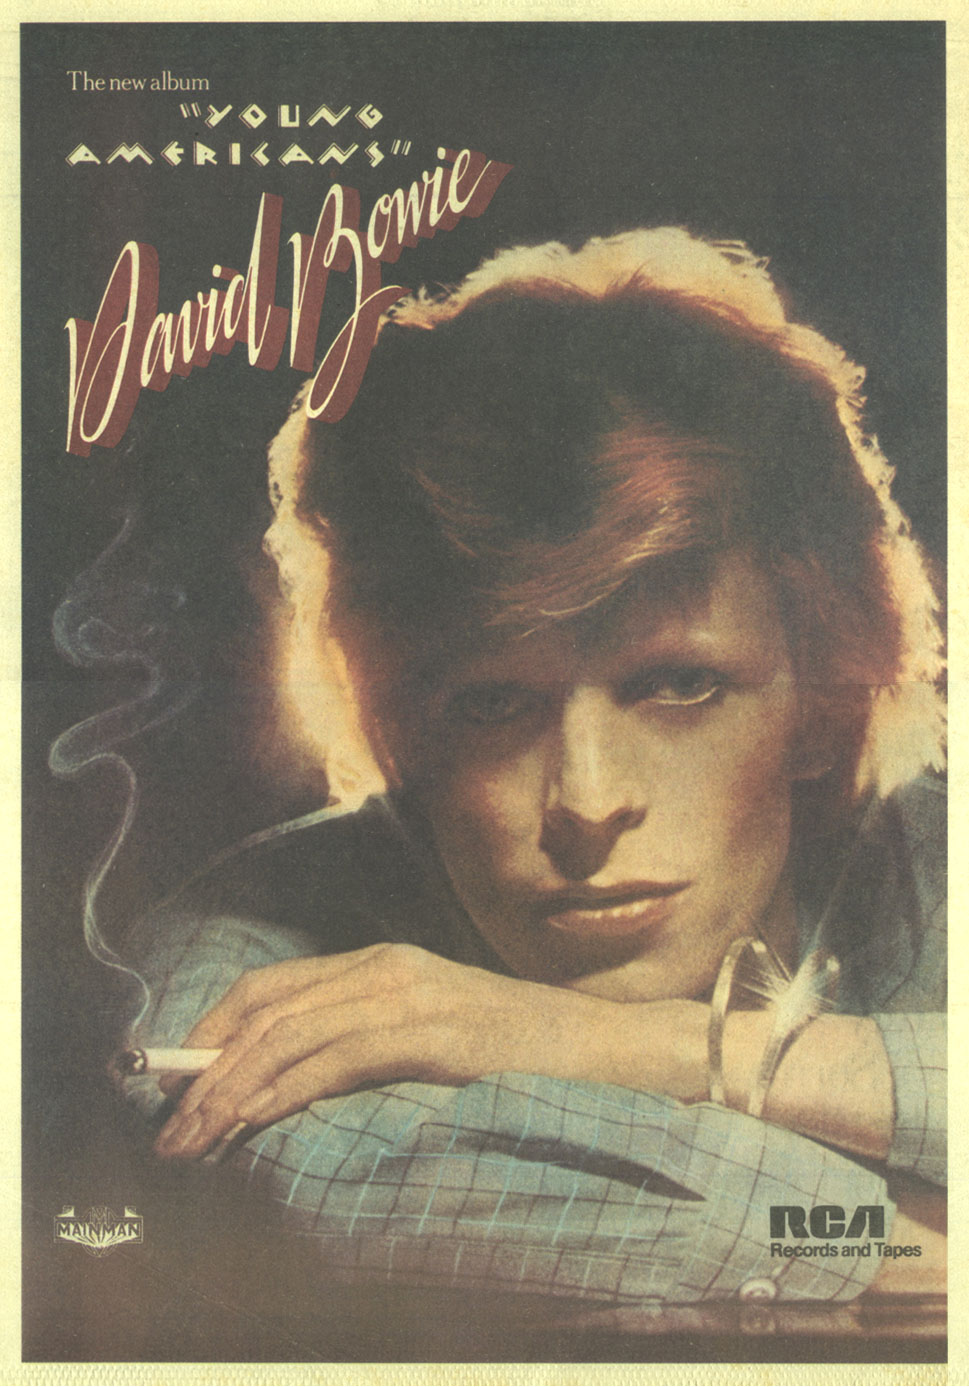 Americans Young David Bowie